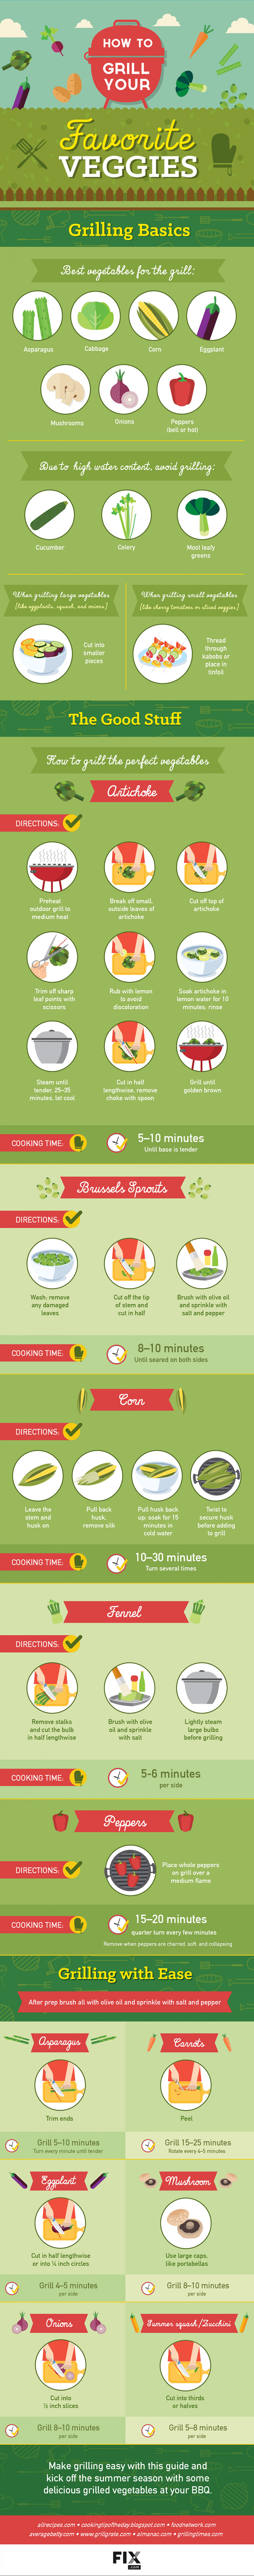 How to Grill Your Favorite Veggies Infographic